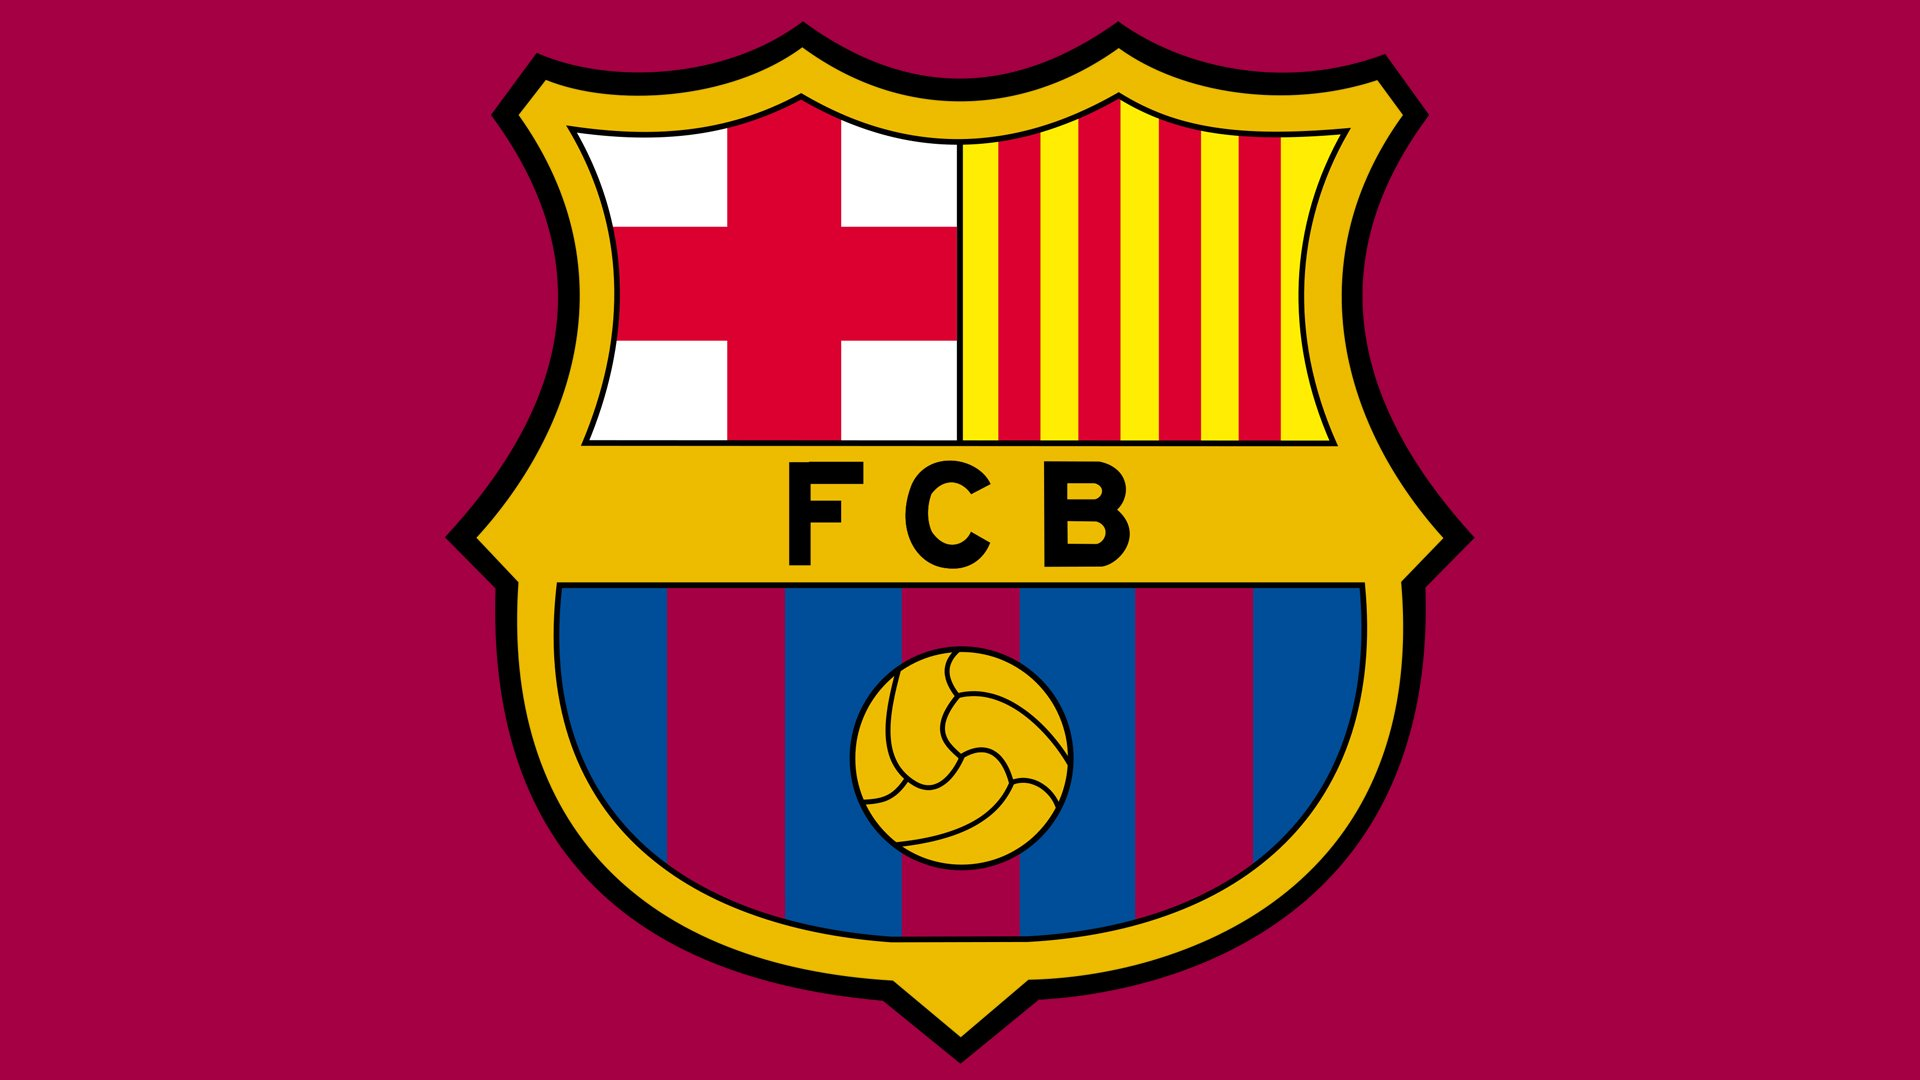 9612353cd Two of the most prominent FC Barcelona colors blue and red (featured on the  bottom part of the football logo) come from the club s first uniform.